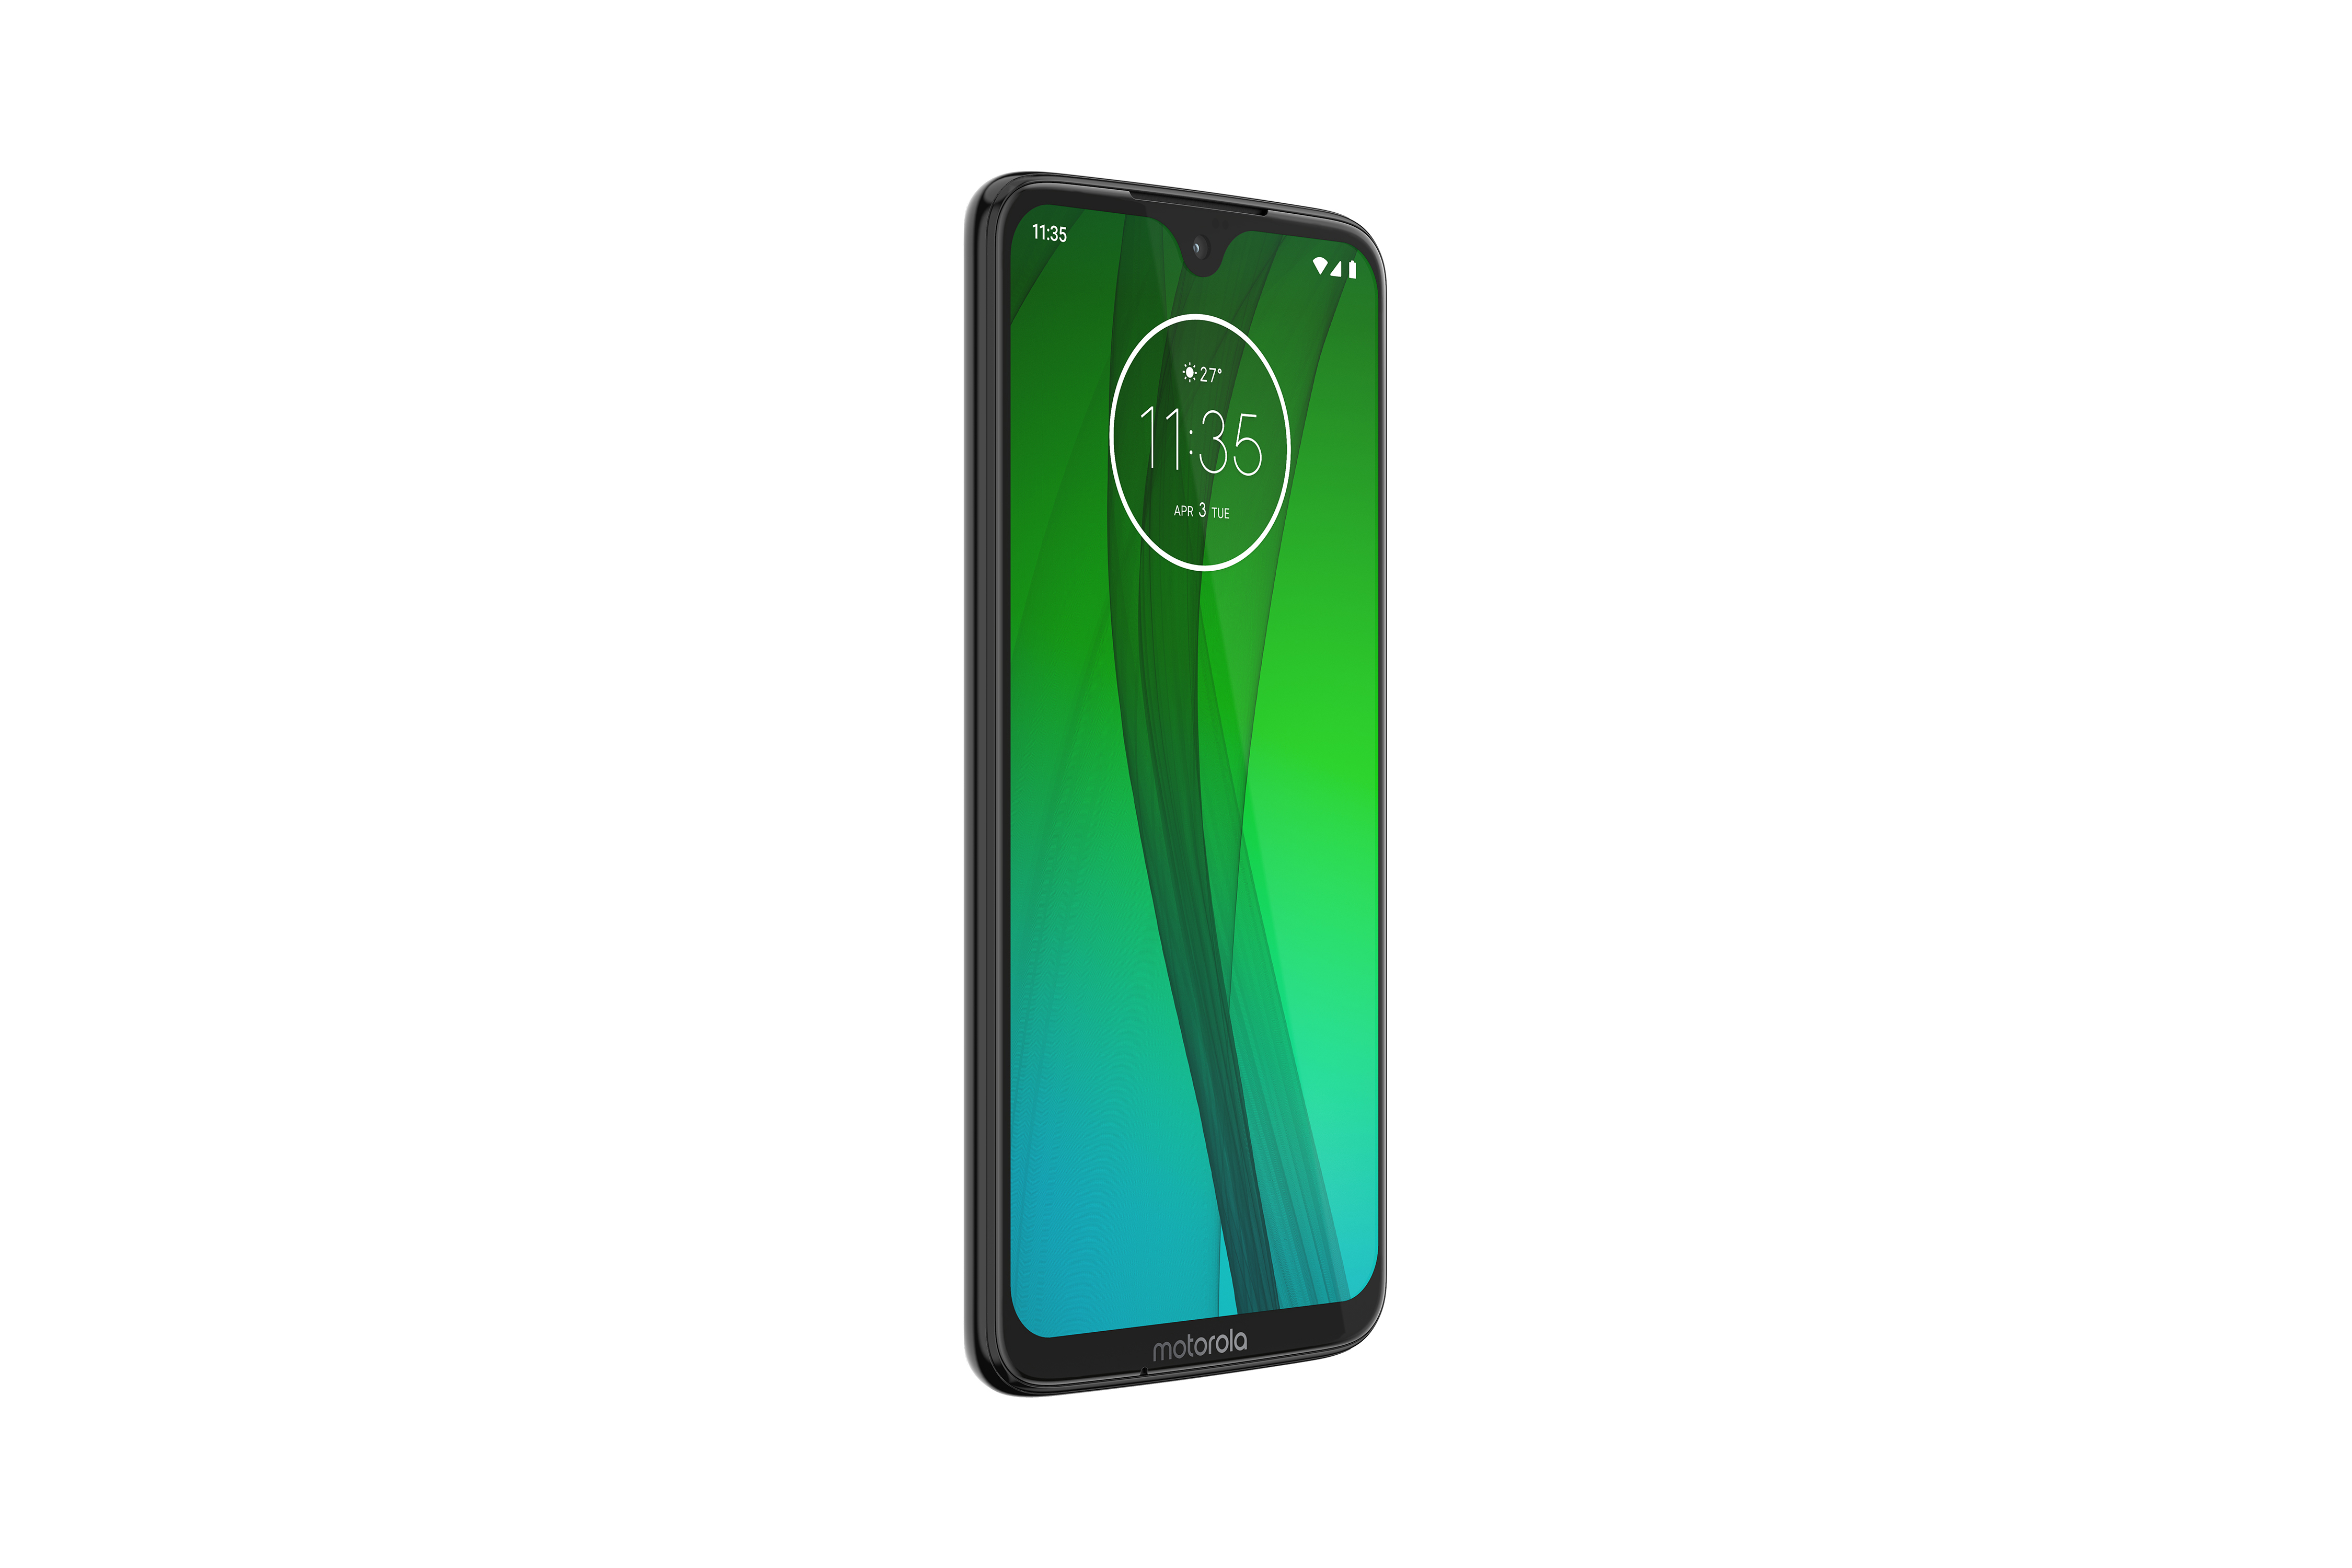 Moto-G7_ROW_BLACK_DYN-FRONT-L_cropped.jpg?mtime=20190923110645#asset:106926